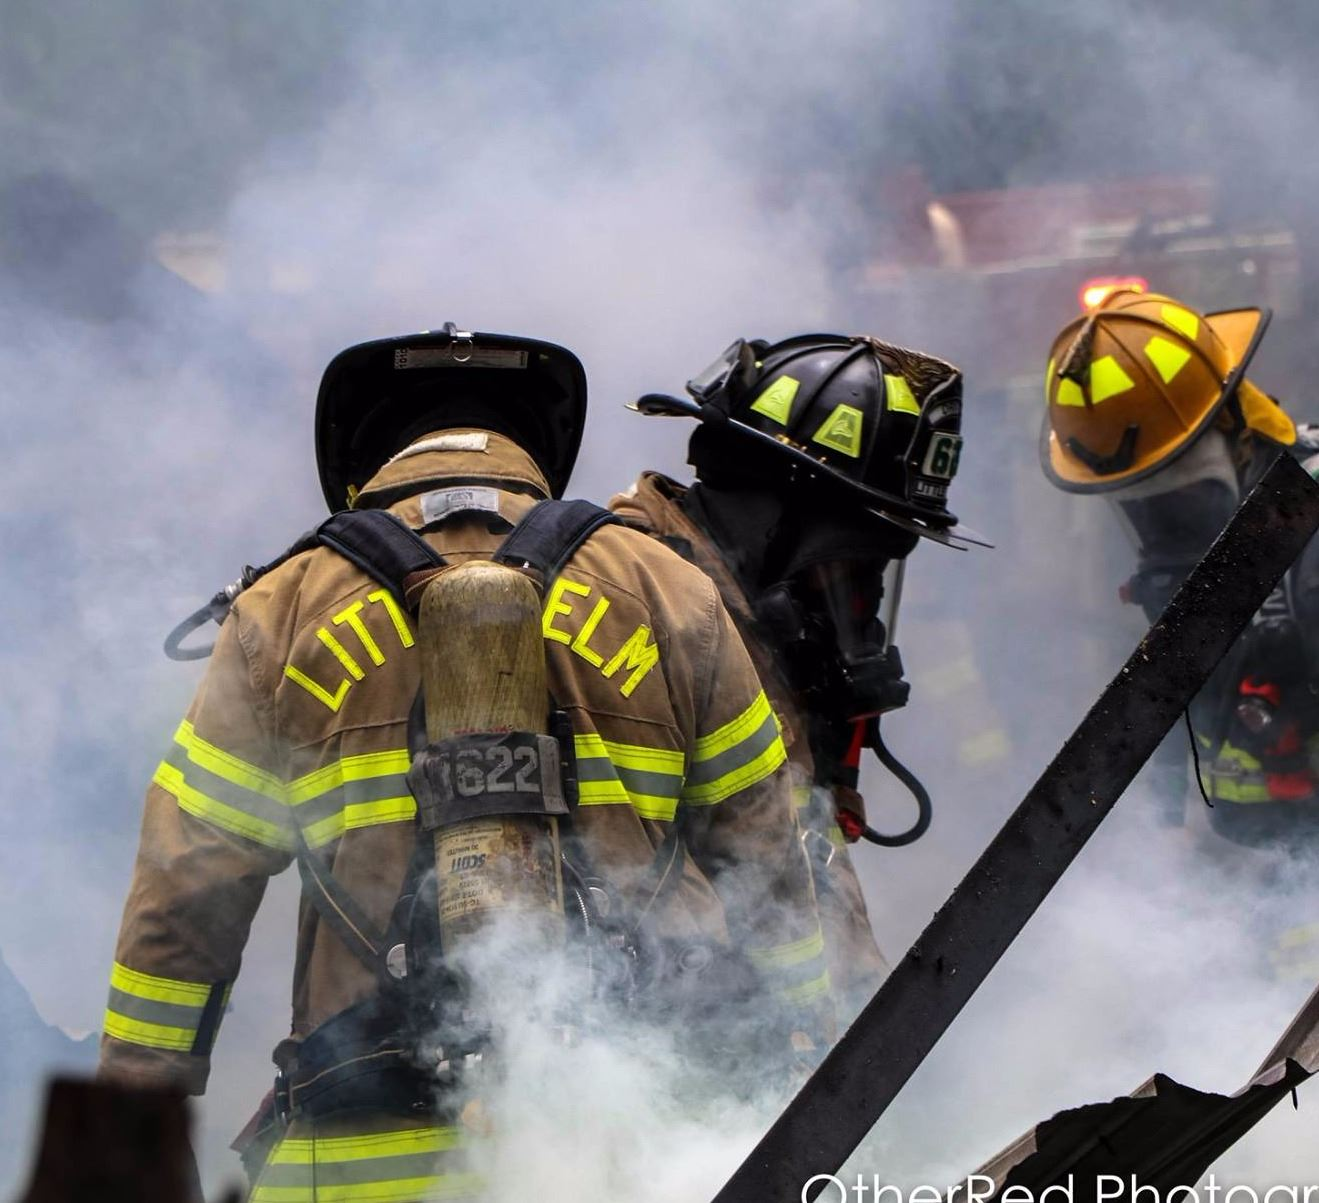 Firefighters in the smoke